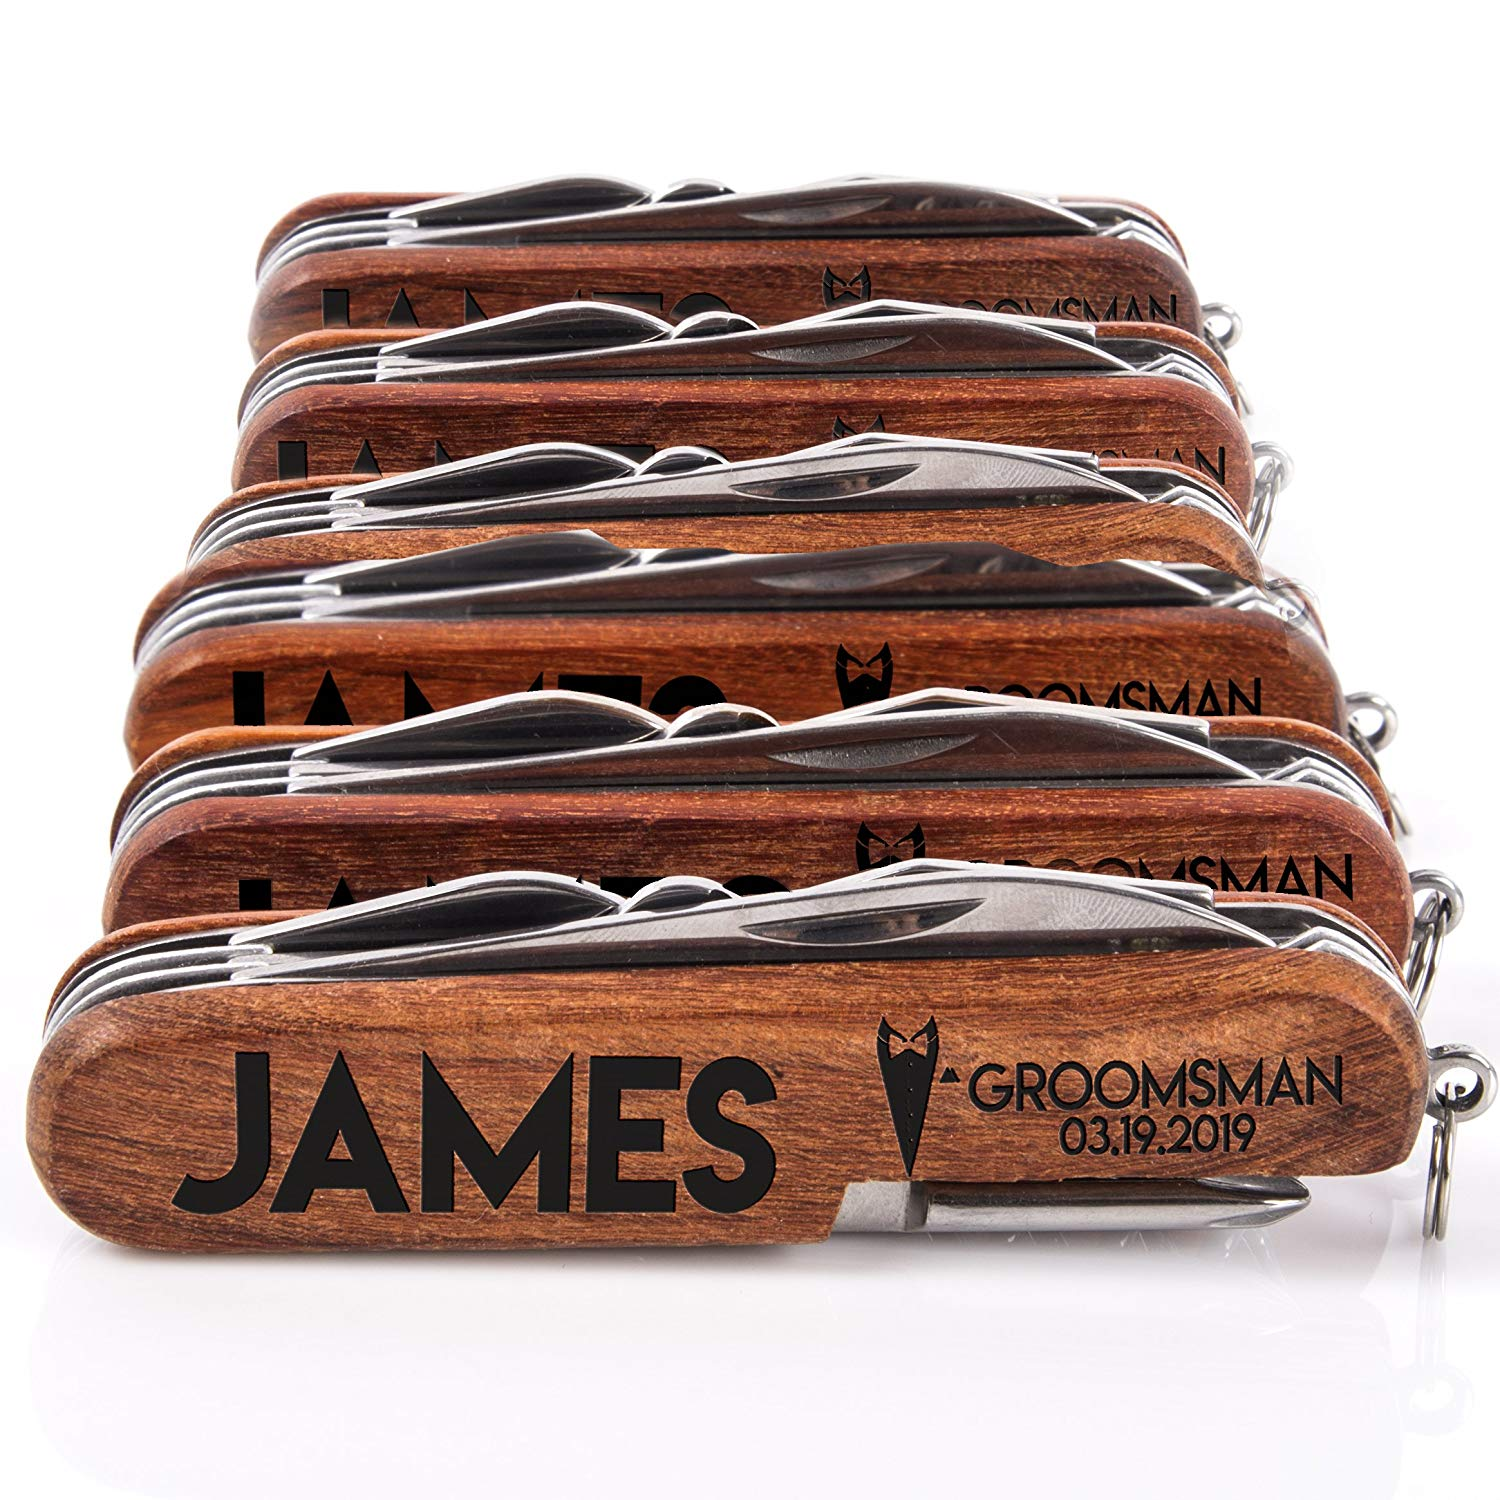 groomsmen gifts - set of 6 personalized pocket knives